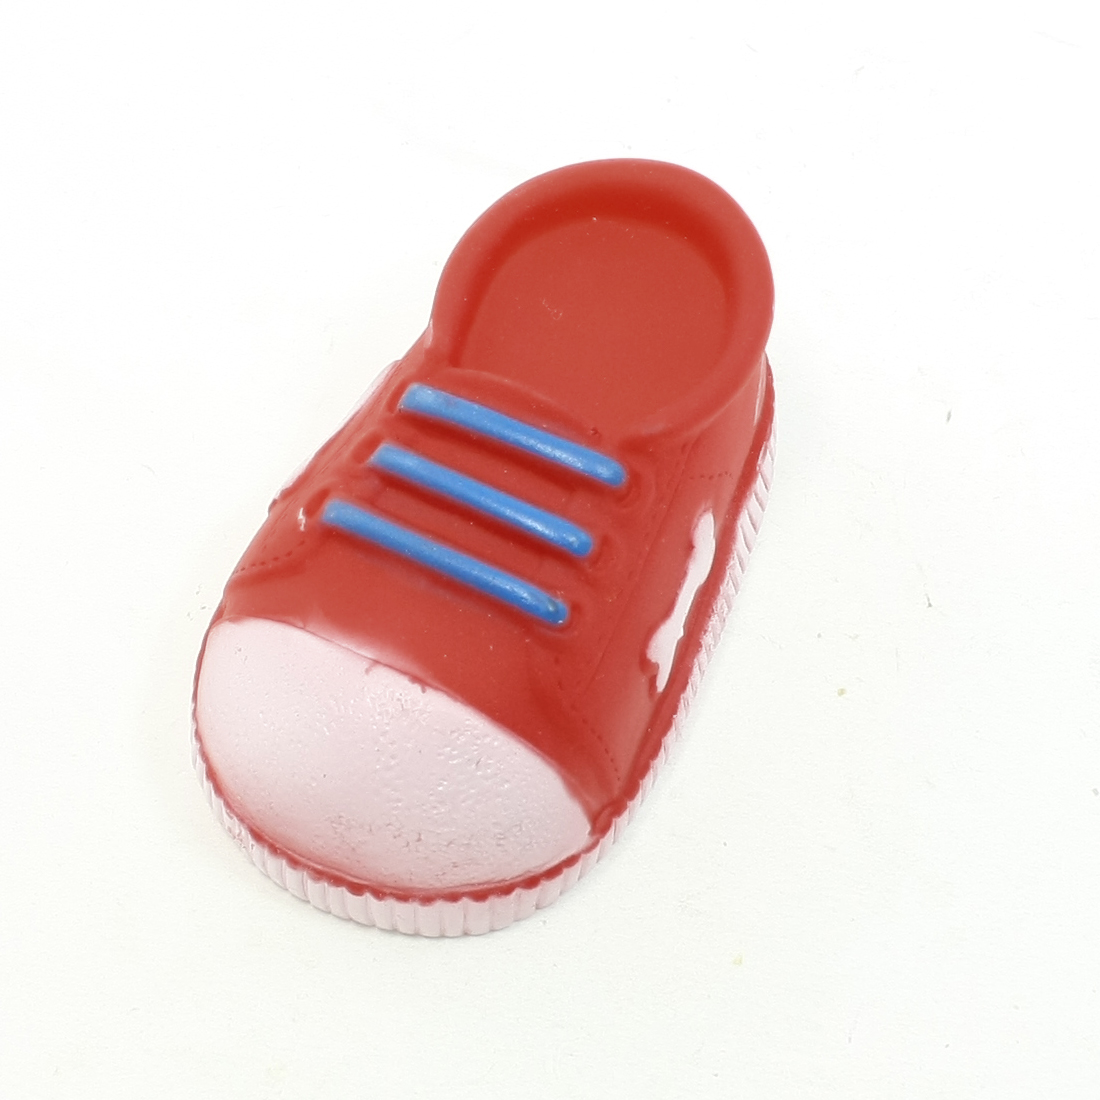 Doggie Puppy Squeeze Squeaker Sports Shoe Design Toy Red